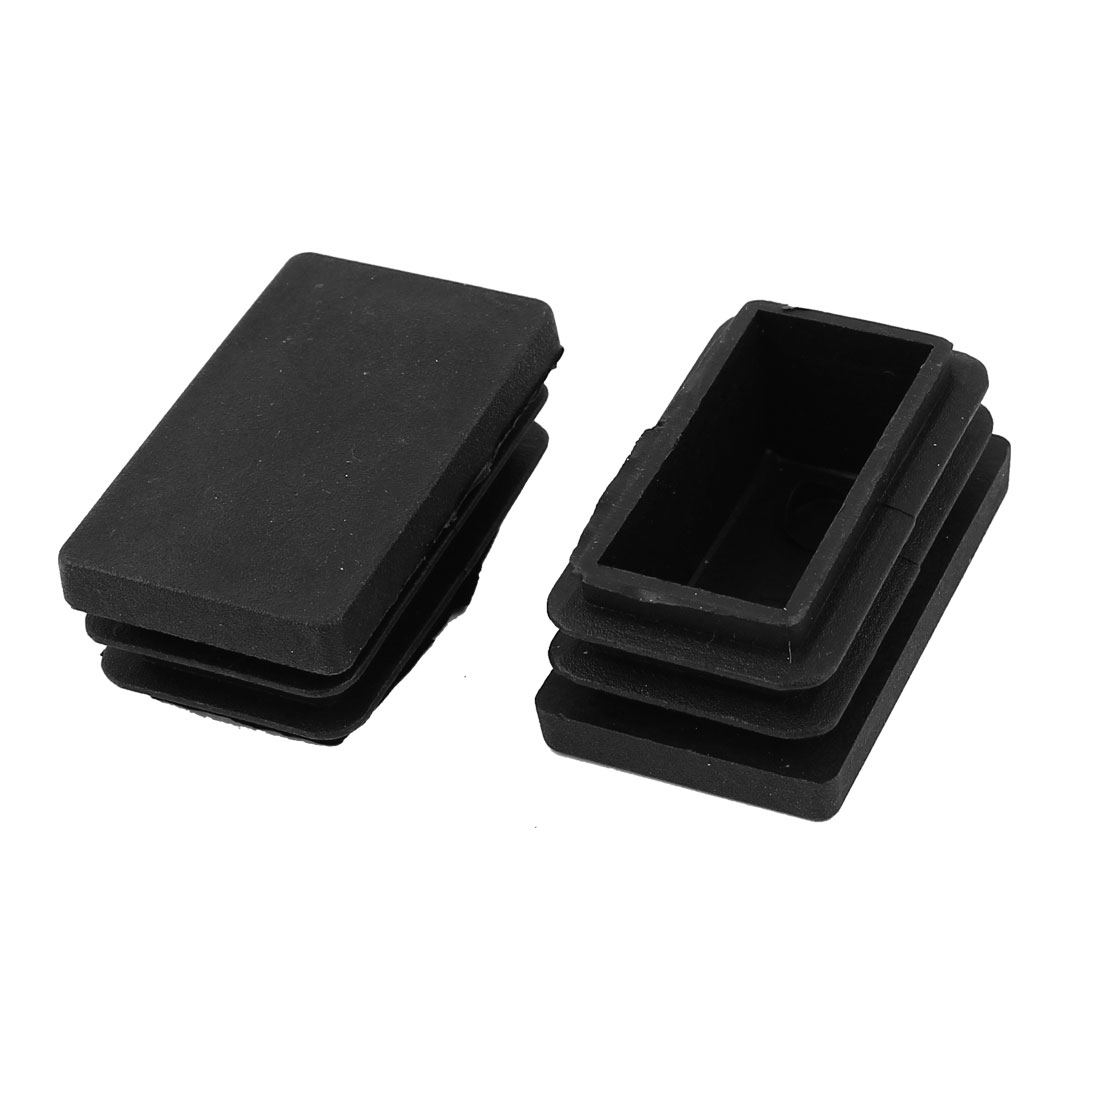 2 Pieces Black Plastic Rectangle Blanking End Caps Tubing Tube Inserts 30mm x 50mm